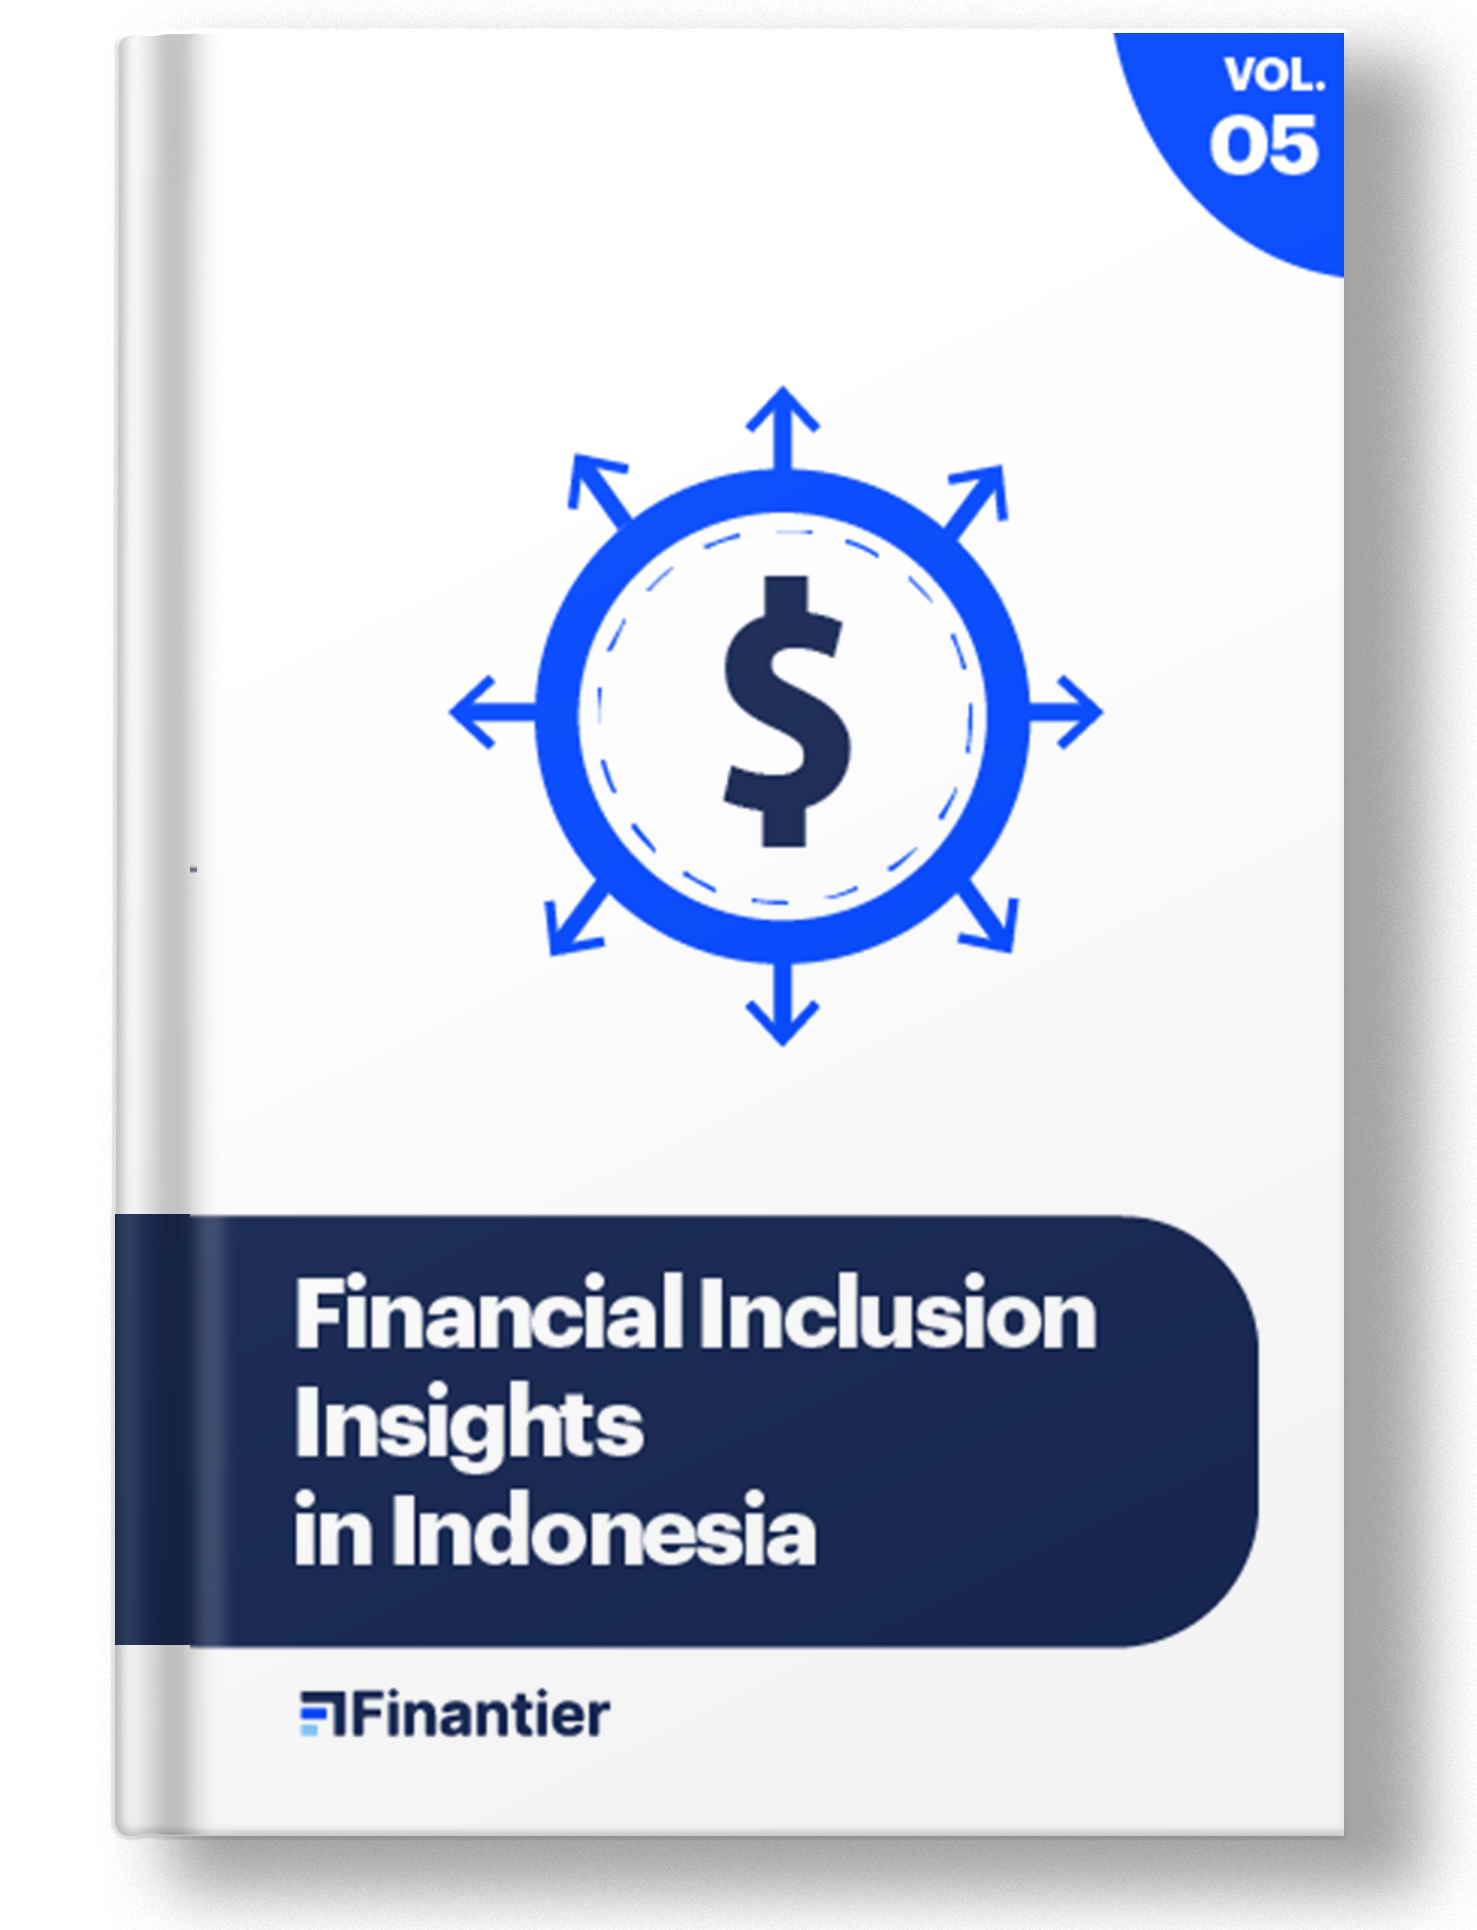 Financial Inclusion Insights in Indonesia